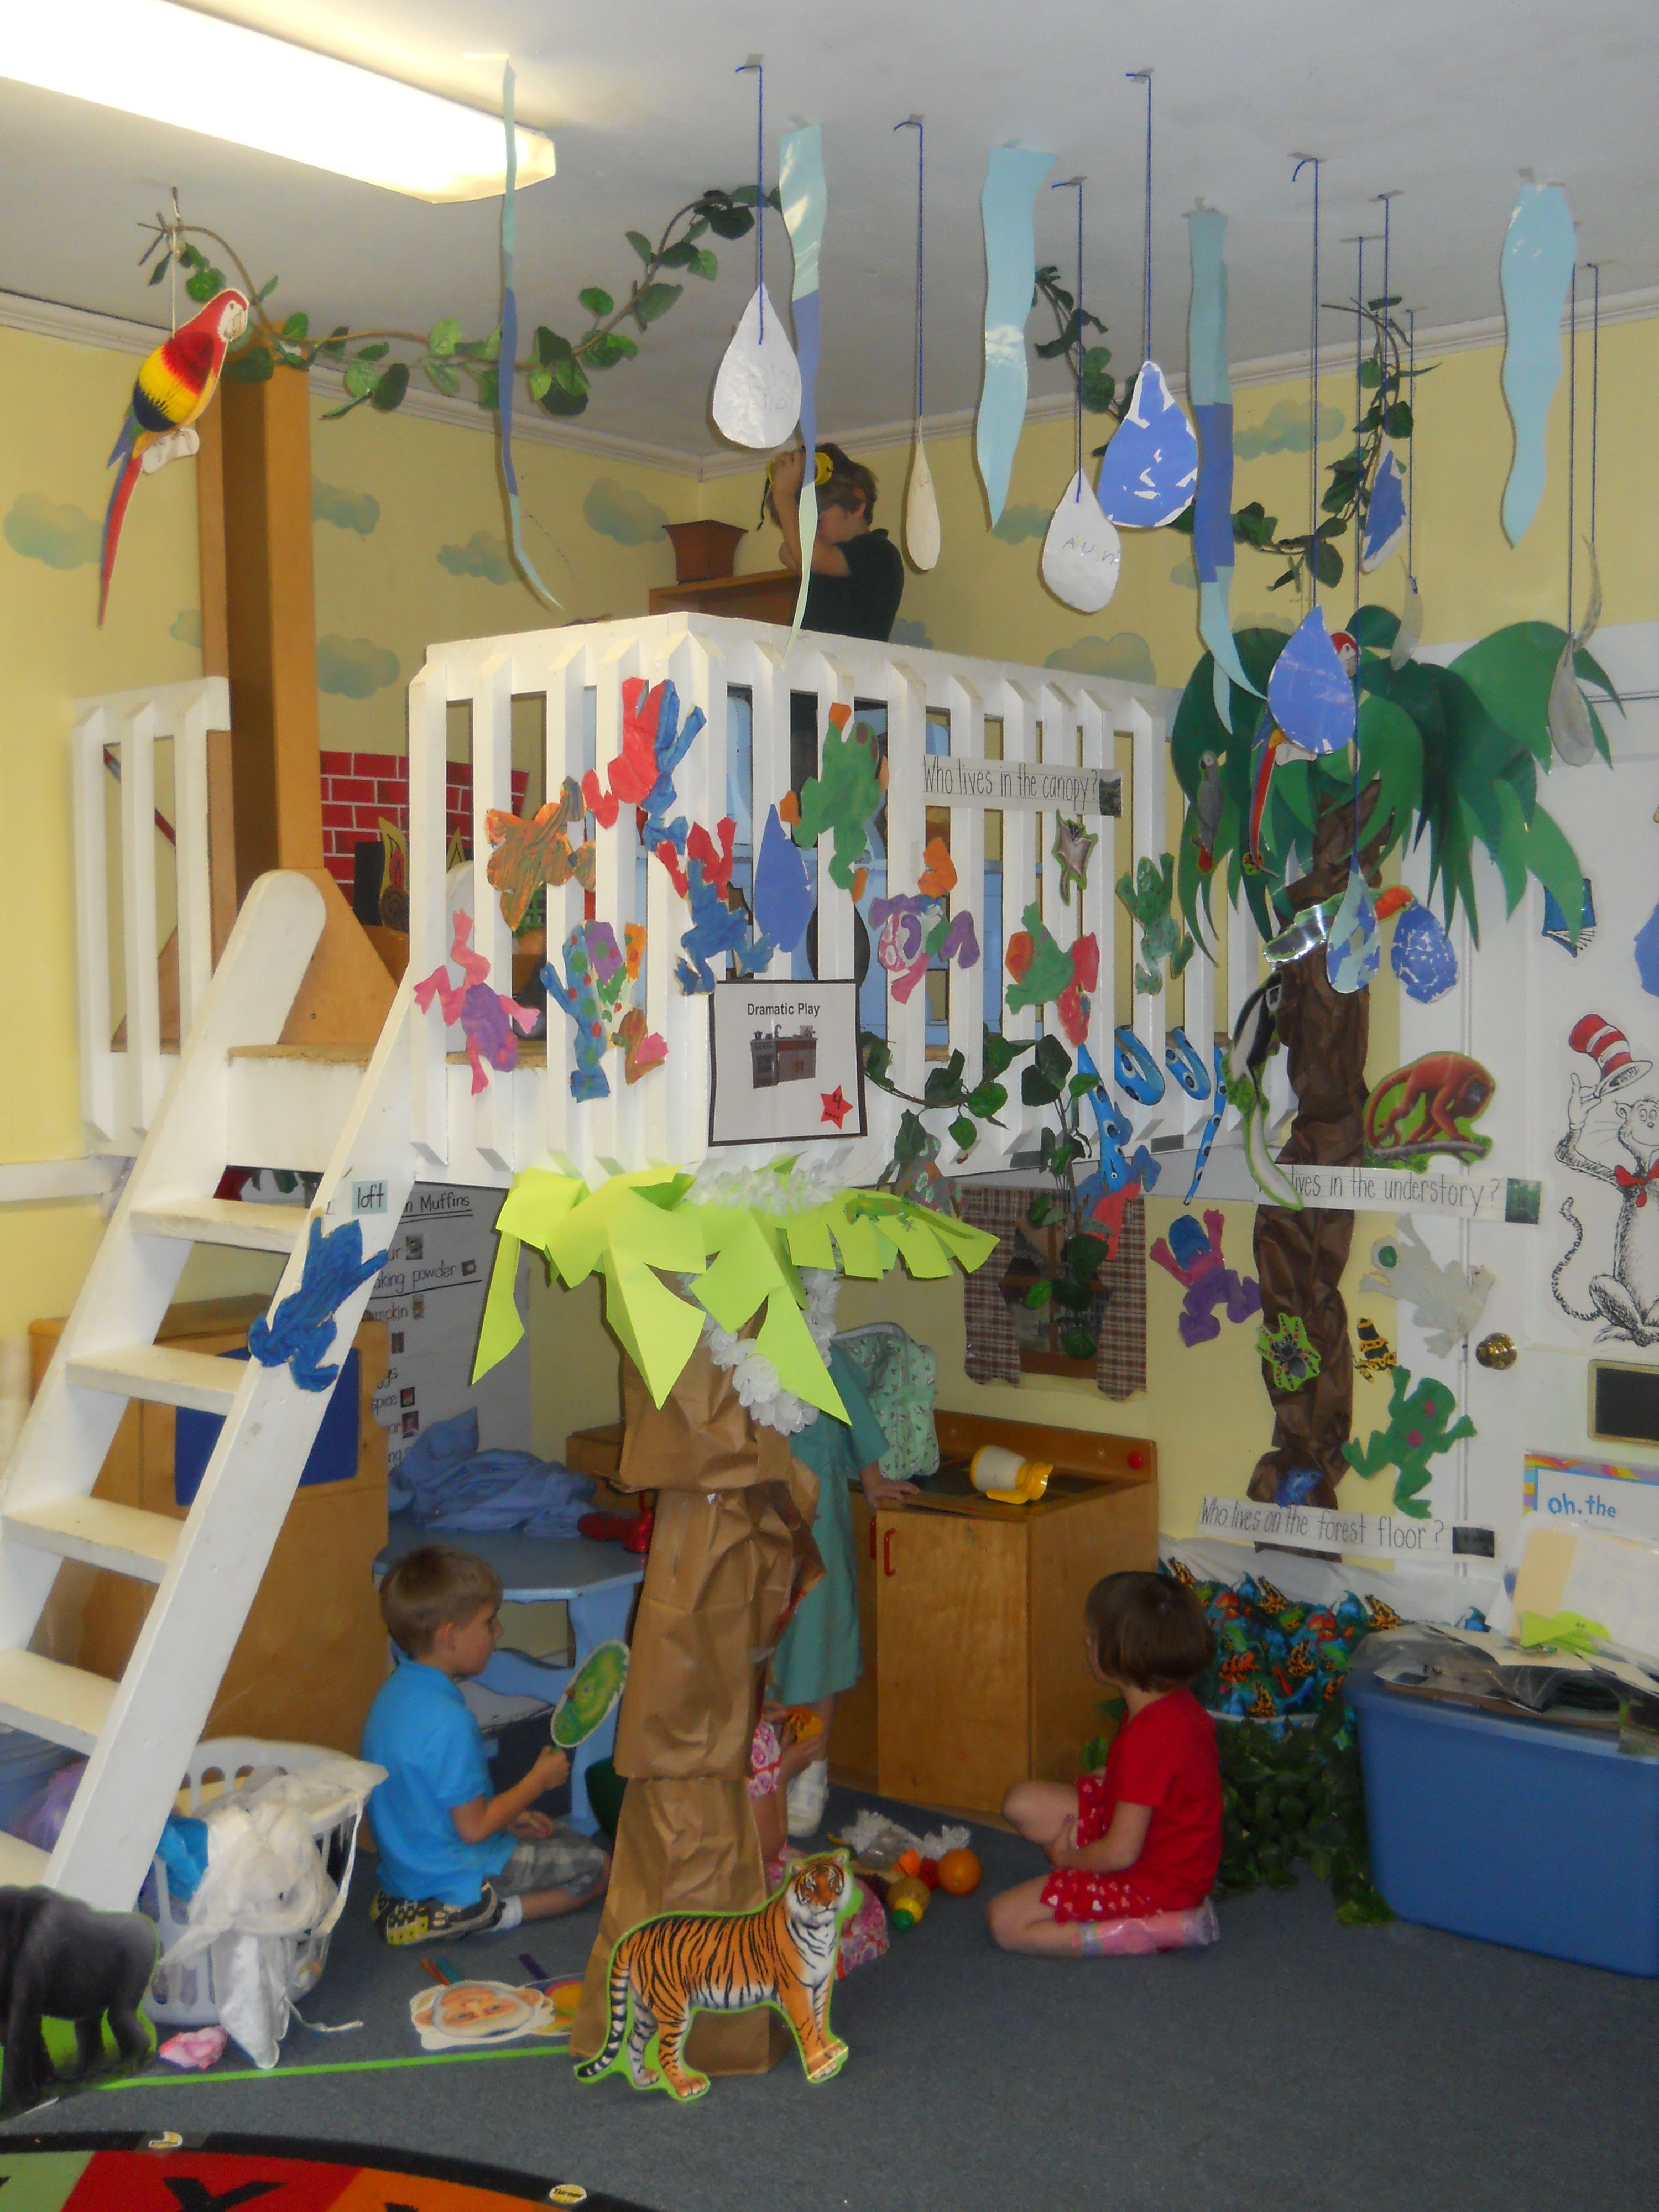 In the playroom